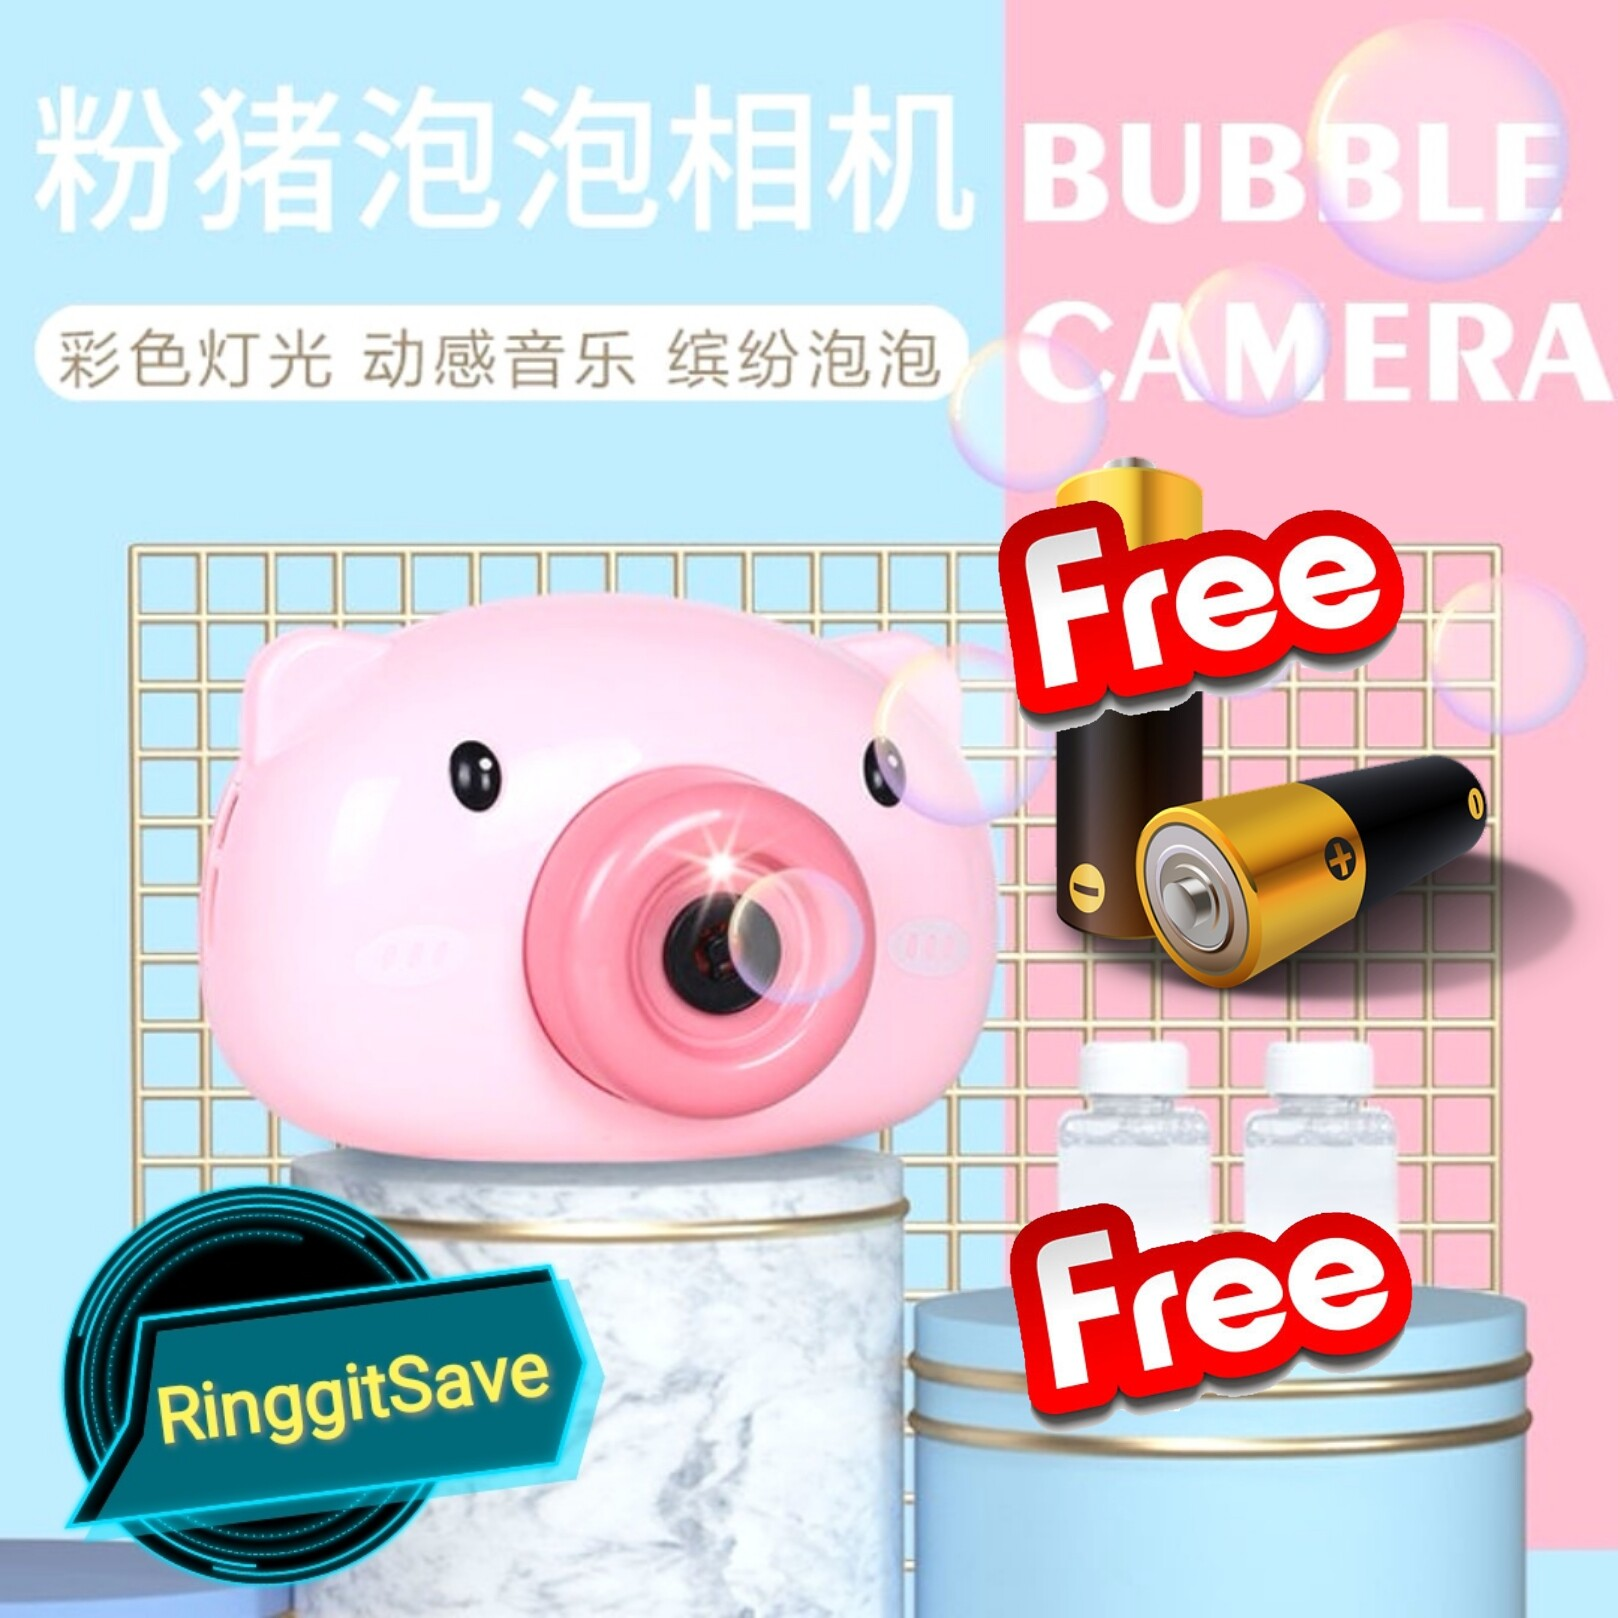 Toy Bubble Animal Blowing Bubbles Machine Automatic Bubble Free Battery & Refill